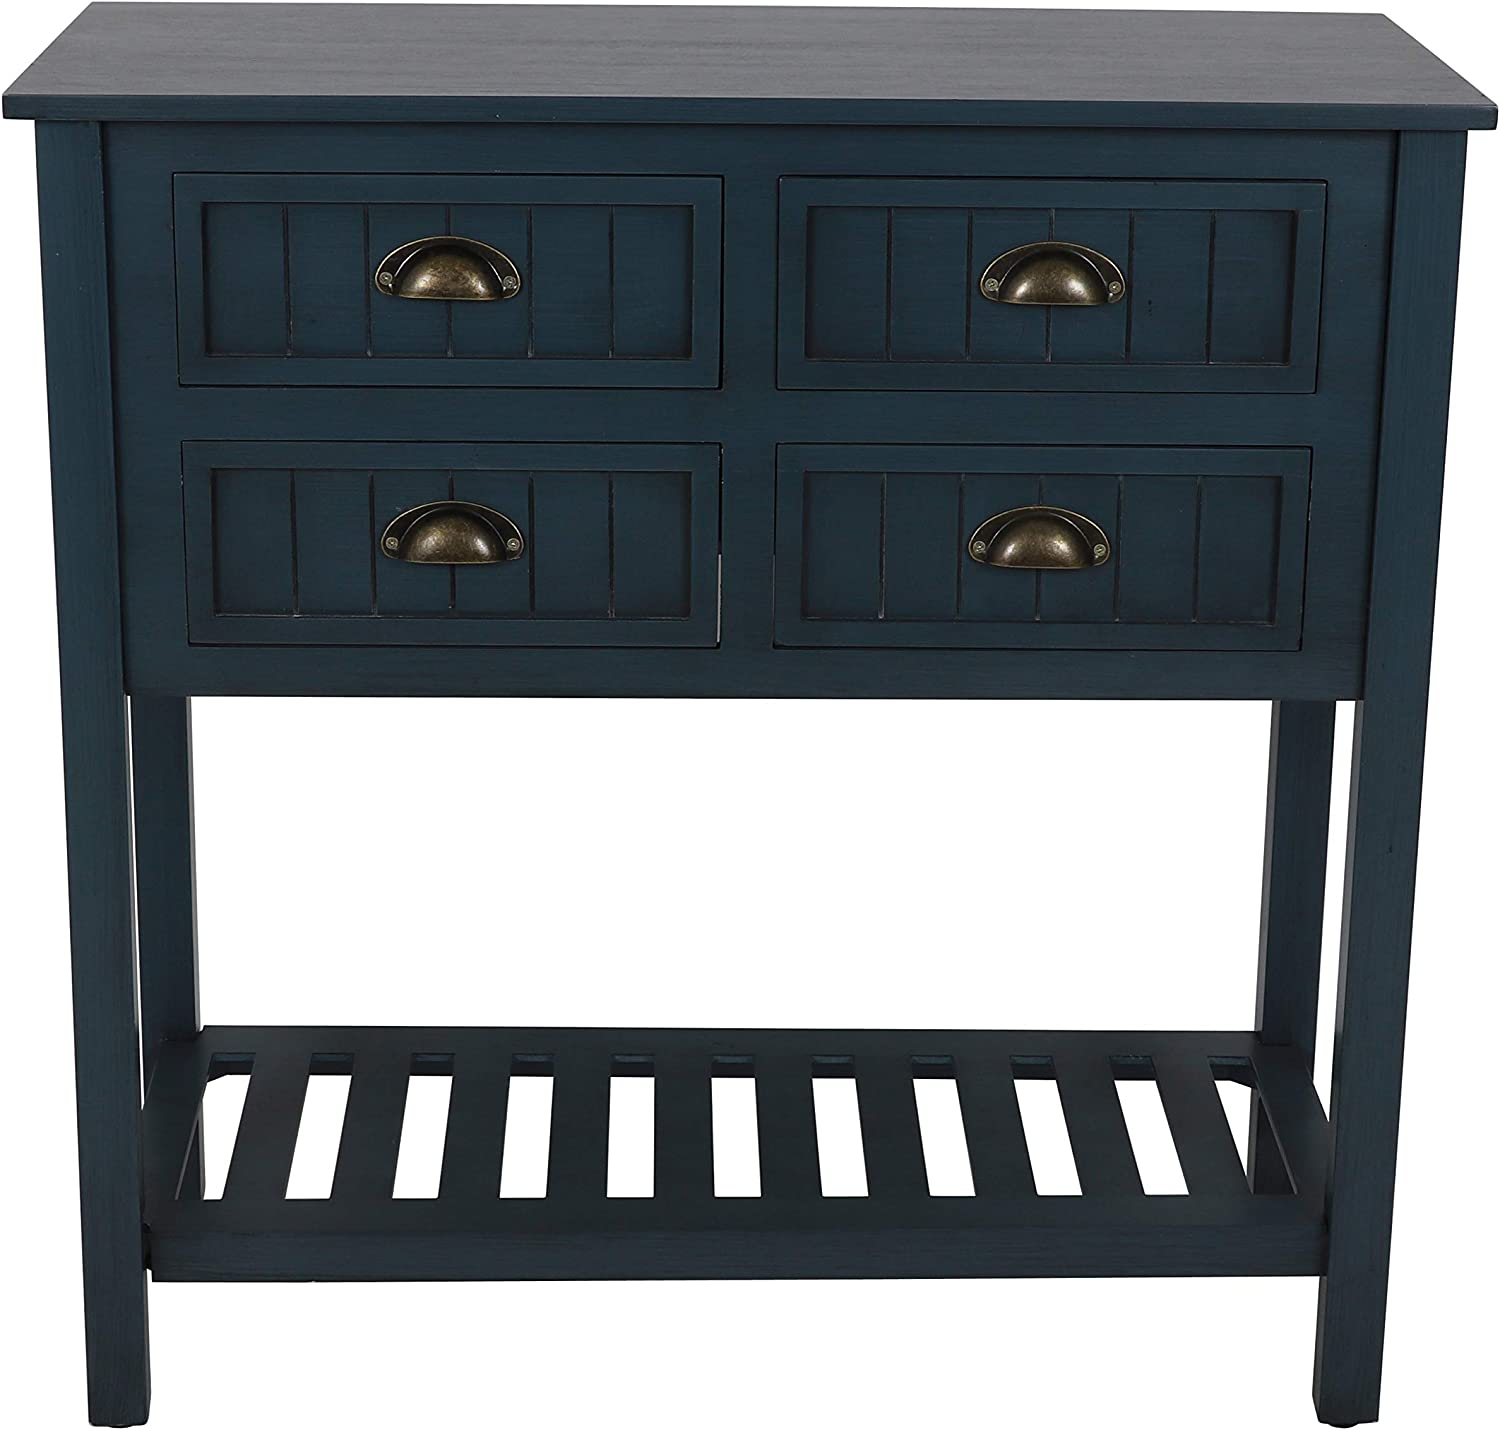 Decor Therapy Bailey Bead board 4-Drawer Console Table, 14x32x32, Antique Navy